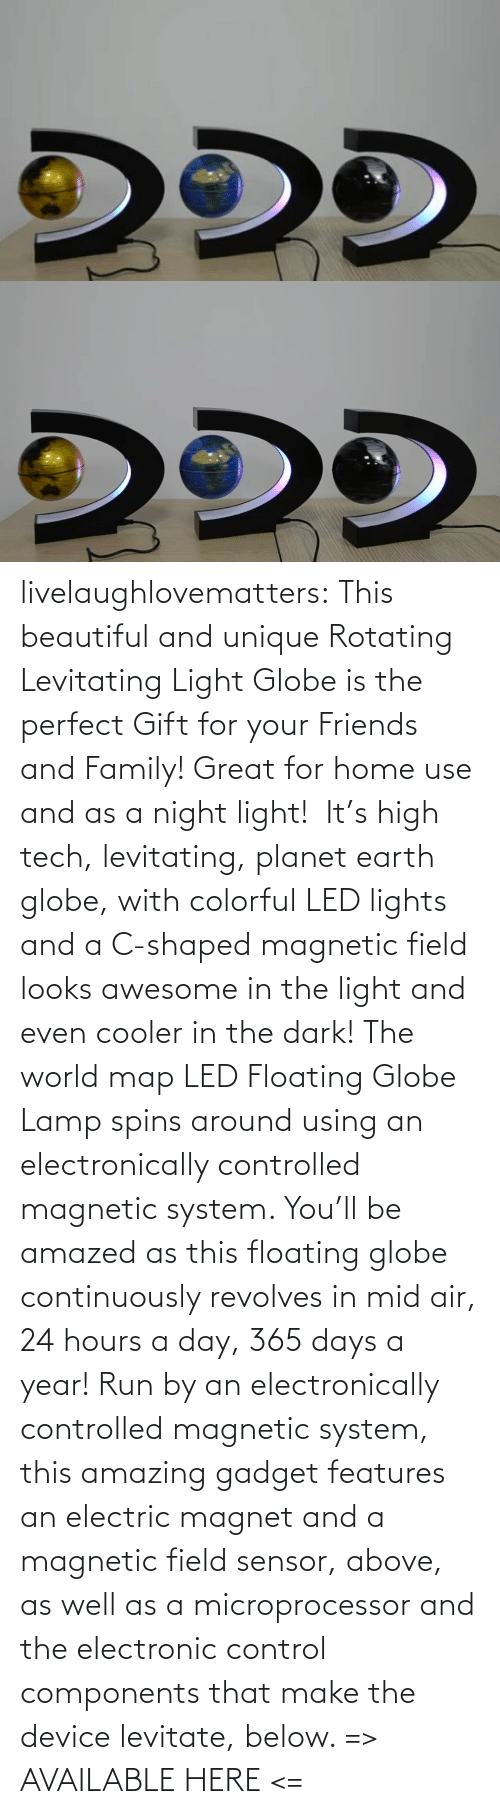 levitating: livelaughlovematters: This beautiful and unique Rotating Levitating Light Globe is the perfect Gift for your Friends and Family! Great for home use and as a night light!  It's high tech, levitating, planet earth globe, with colorful LED lights and a C-shaped magnetic field looks awesome in the light and even cooler in the dark! The world map LED Floating Globe Lamp spins around using an electronically controlled magnetic system.  You'll be amazed as this floating globe continuously revolves in mid air, 24 hours a day, 365 days a year! Run by an electronically controlled magnetic system, this amazing gadget features an electric magnet and a magnetic field sensor, above, as well as a microprocessor and the electronic control components that make the device levitate, below.  => AVAILABLE HERE <=